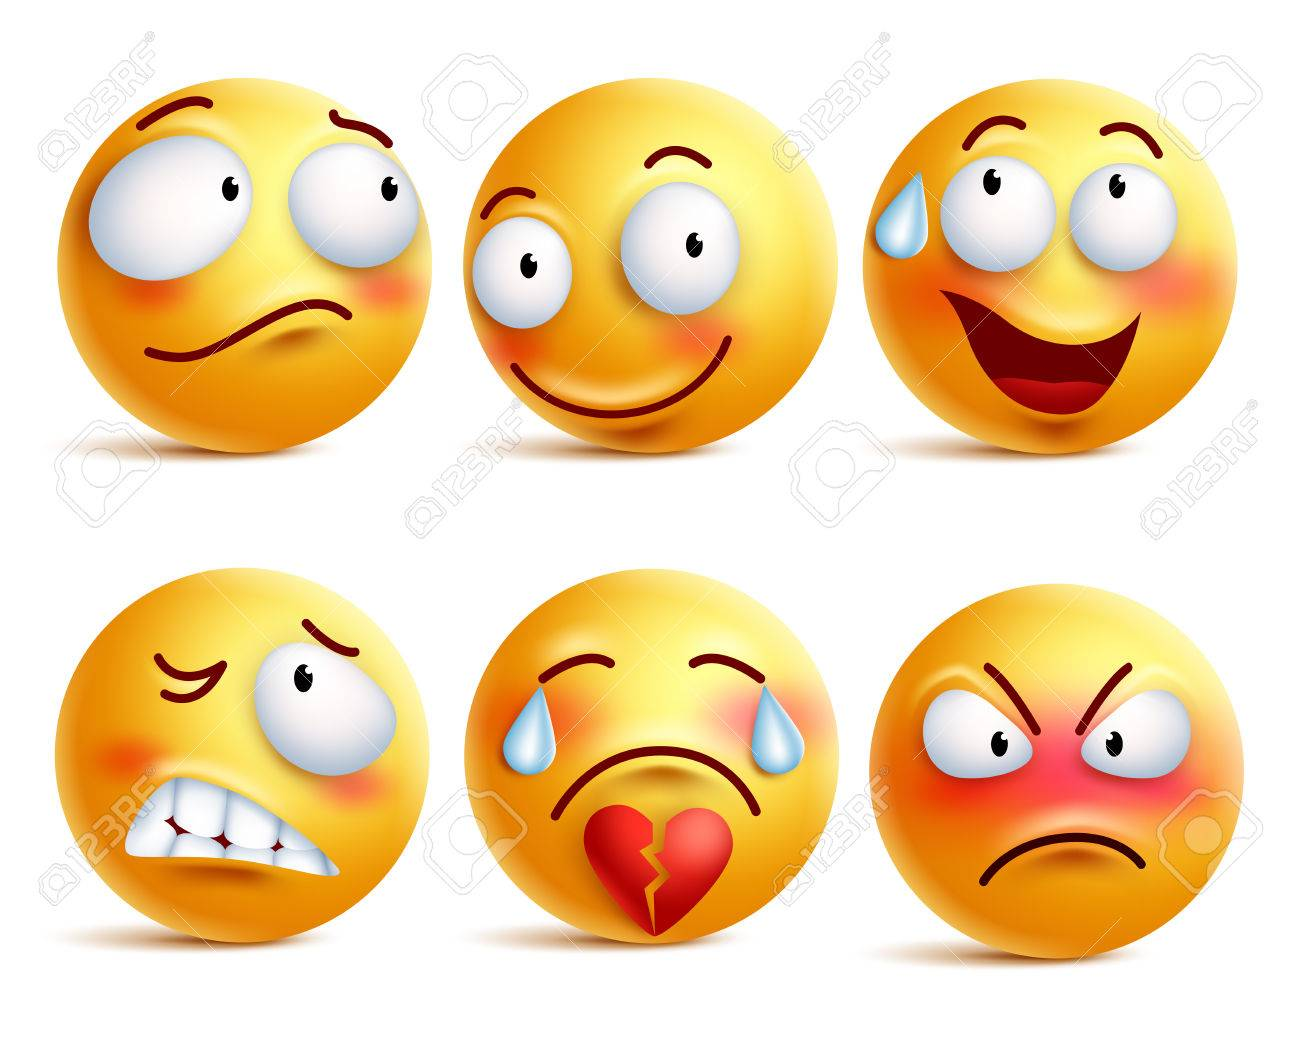 Smileys vector set. Smiley face or yellow emoticons with facial expressions and emotions like happy